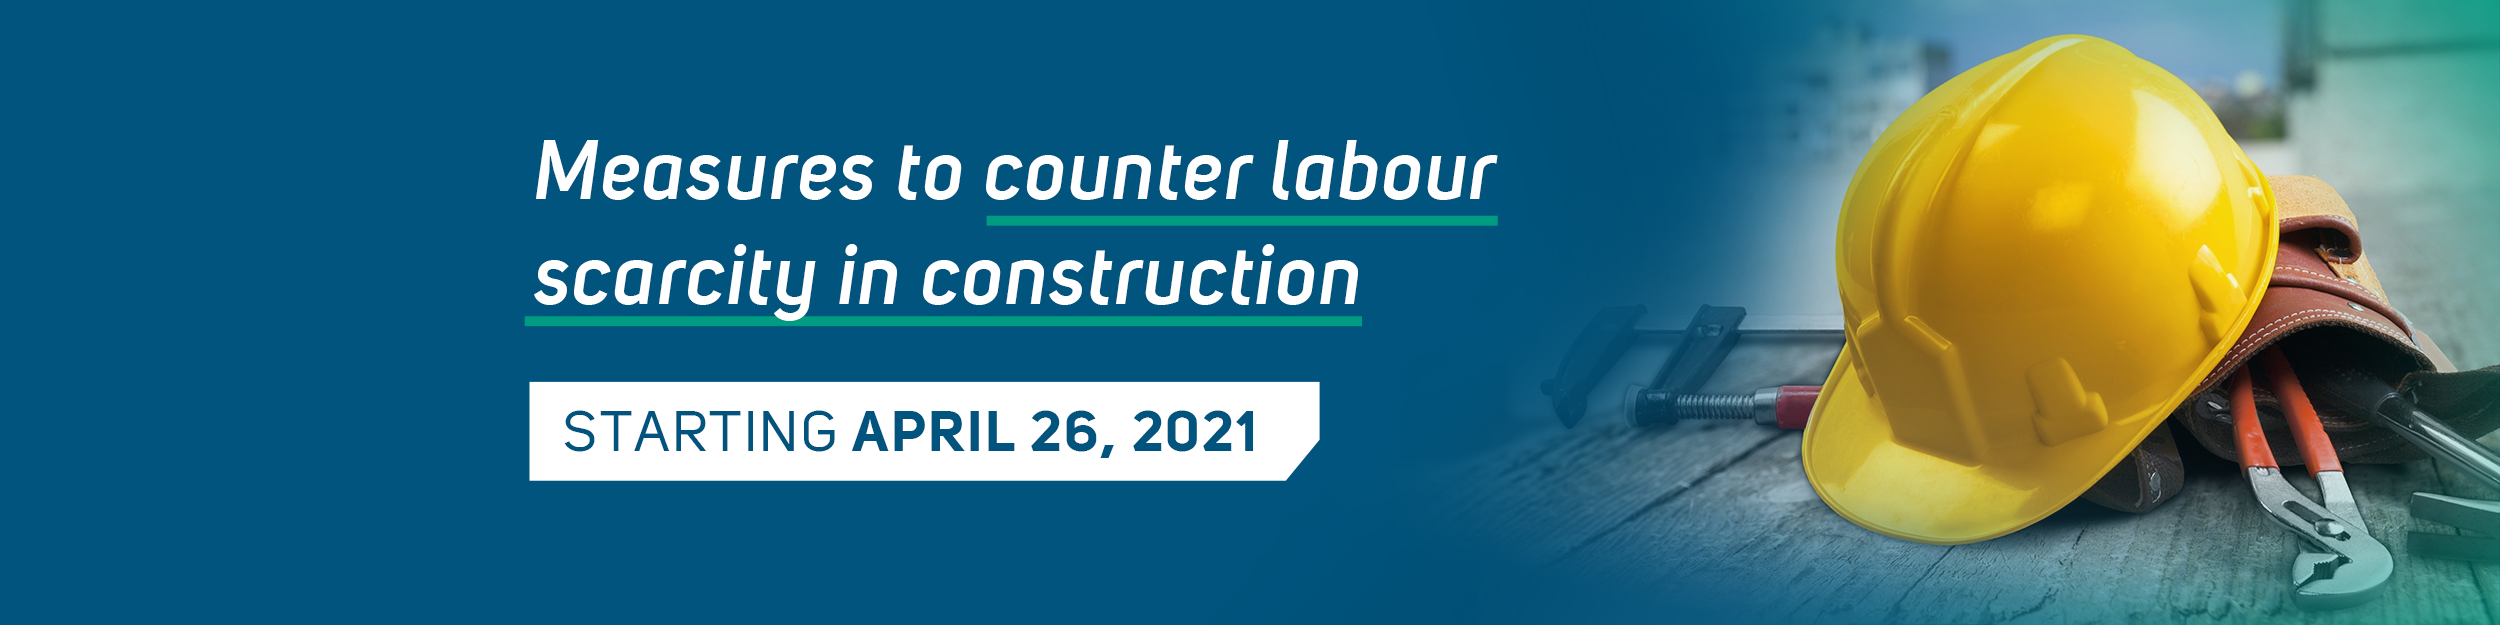 Labour scarcity in construction